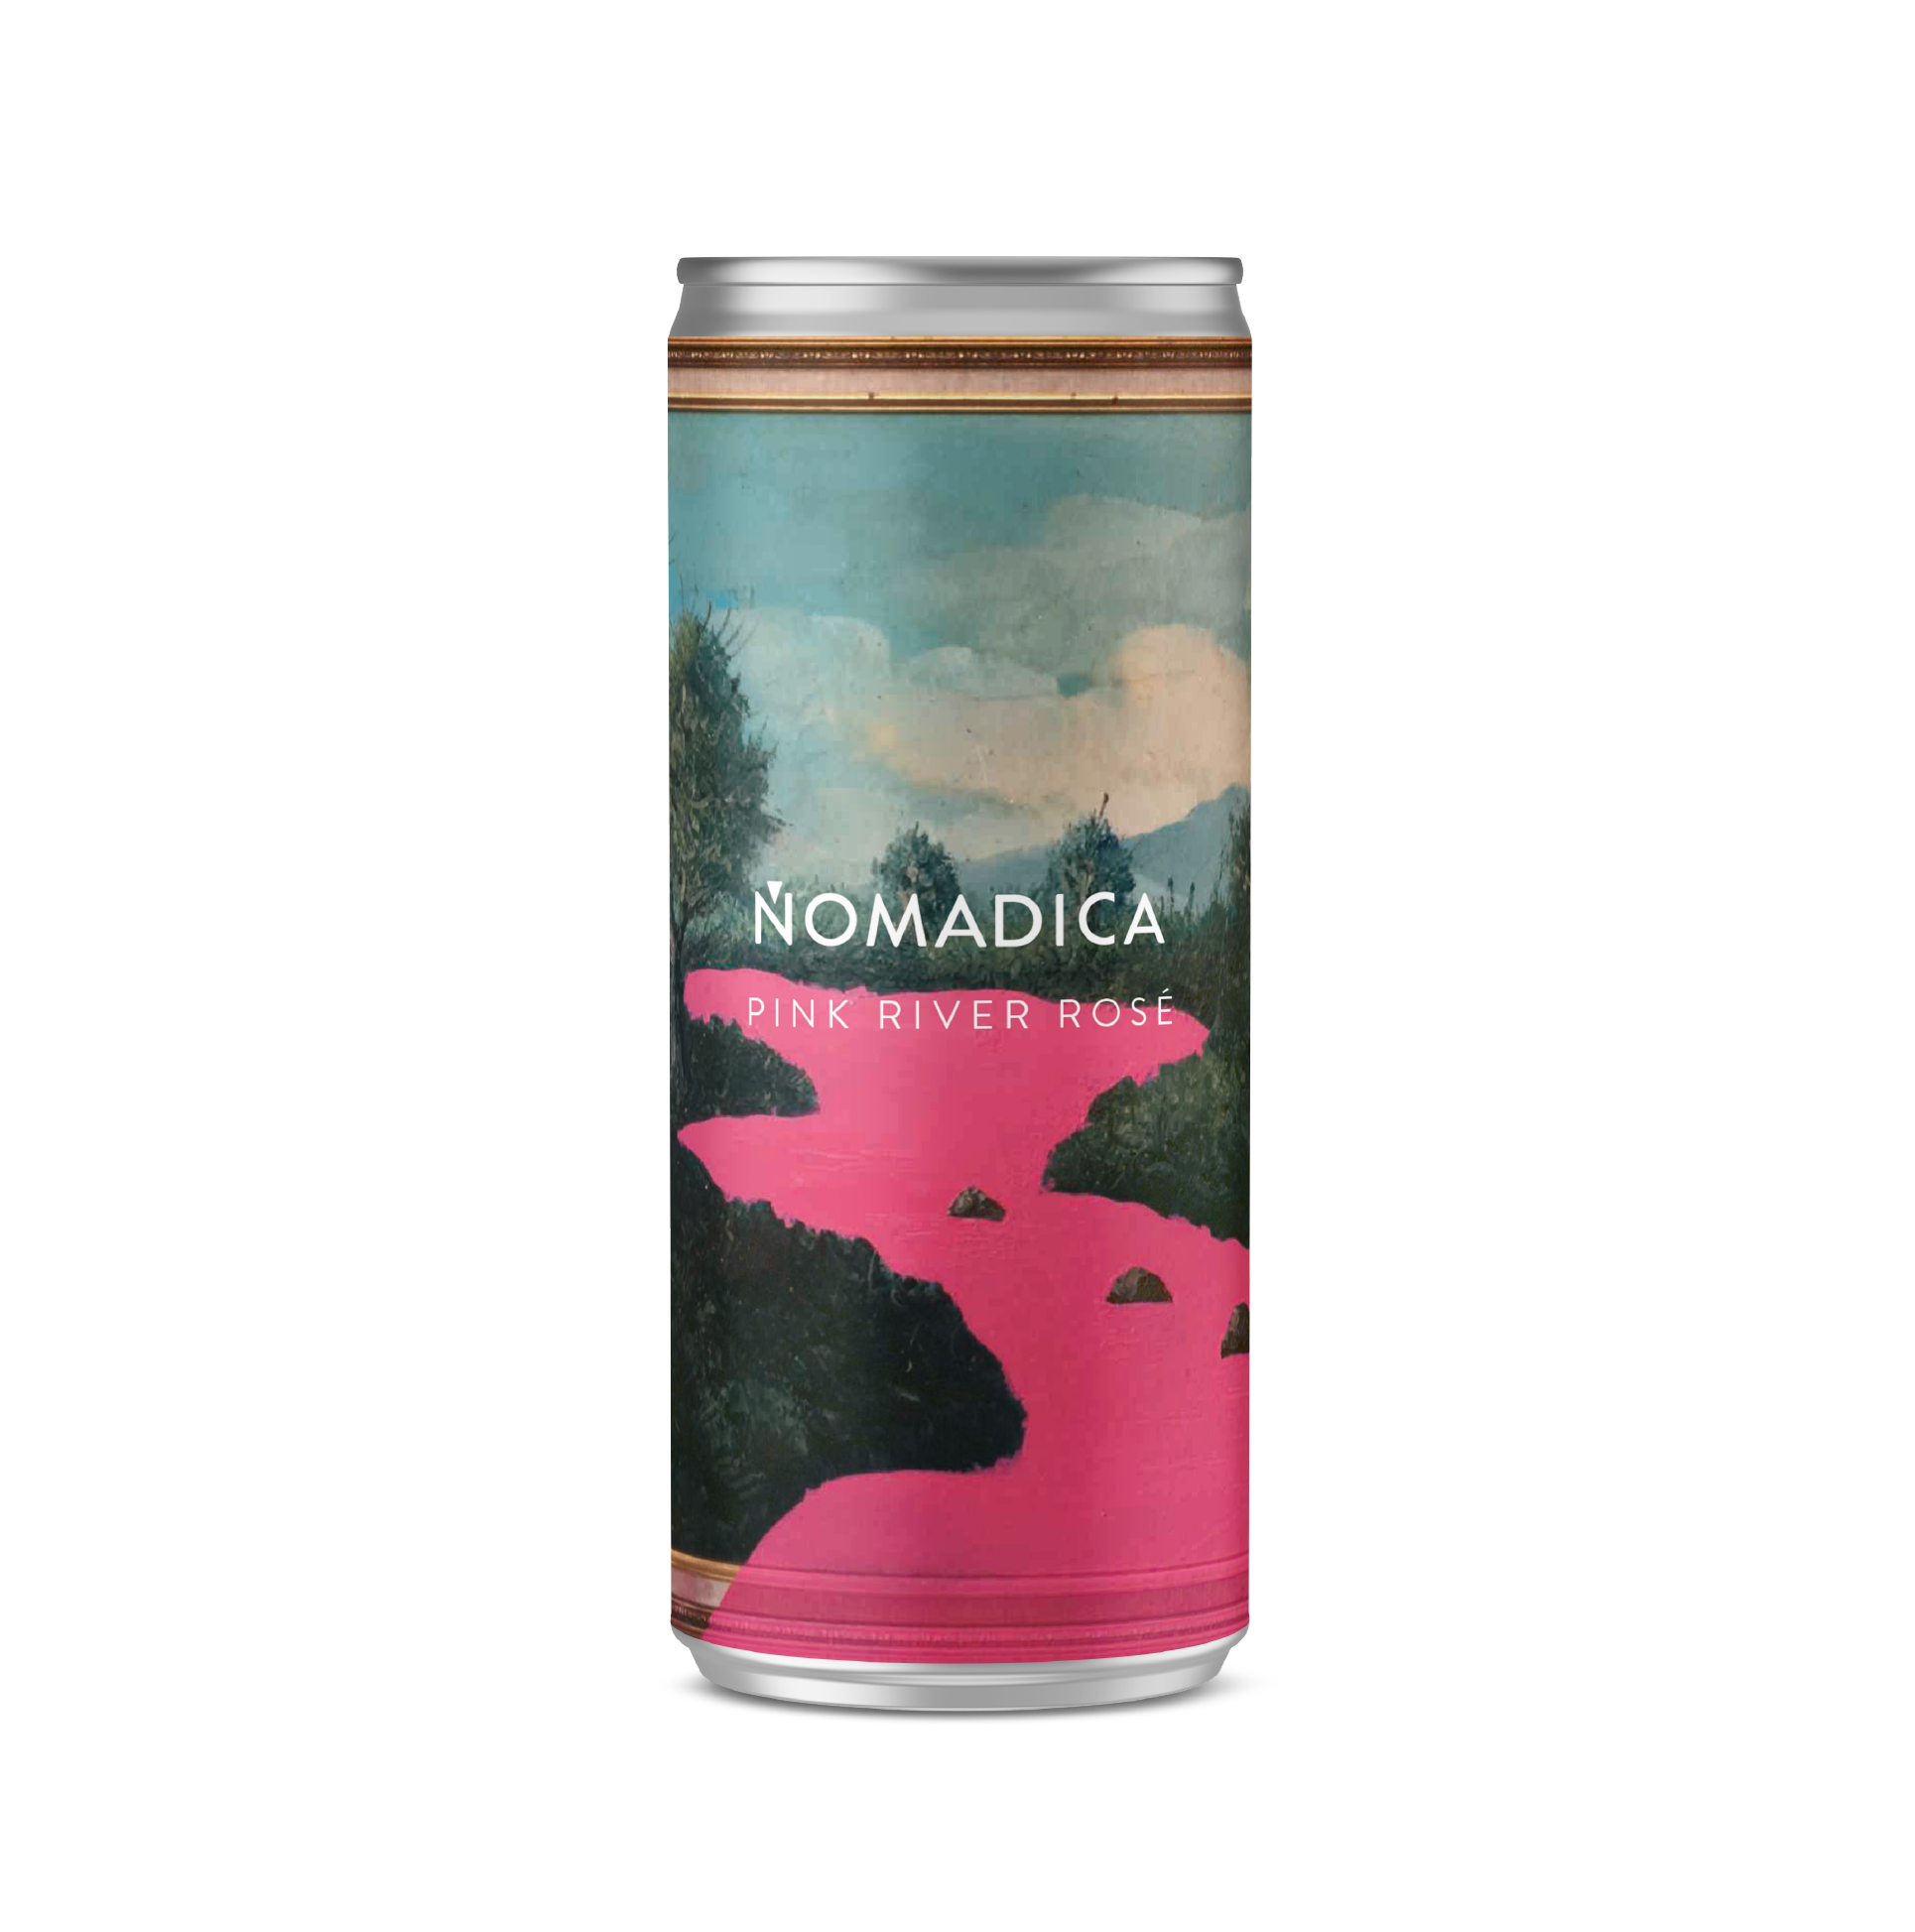 10 Delicious Canned Wines That Just Made Your Drinking 1,000 Times Easier